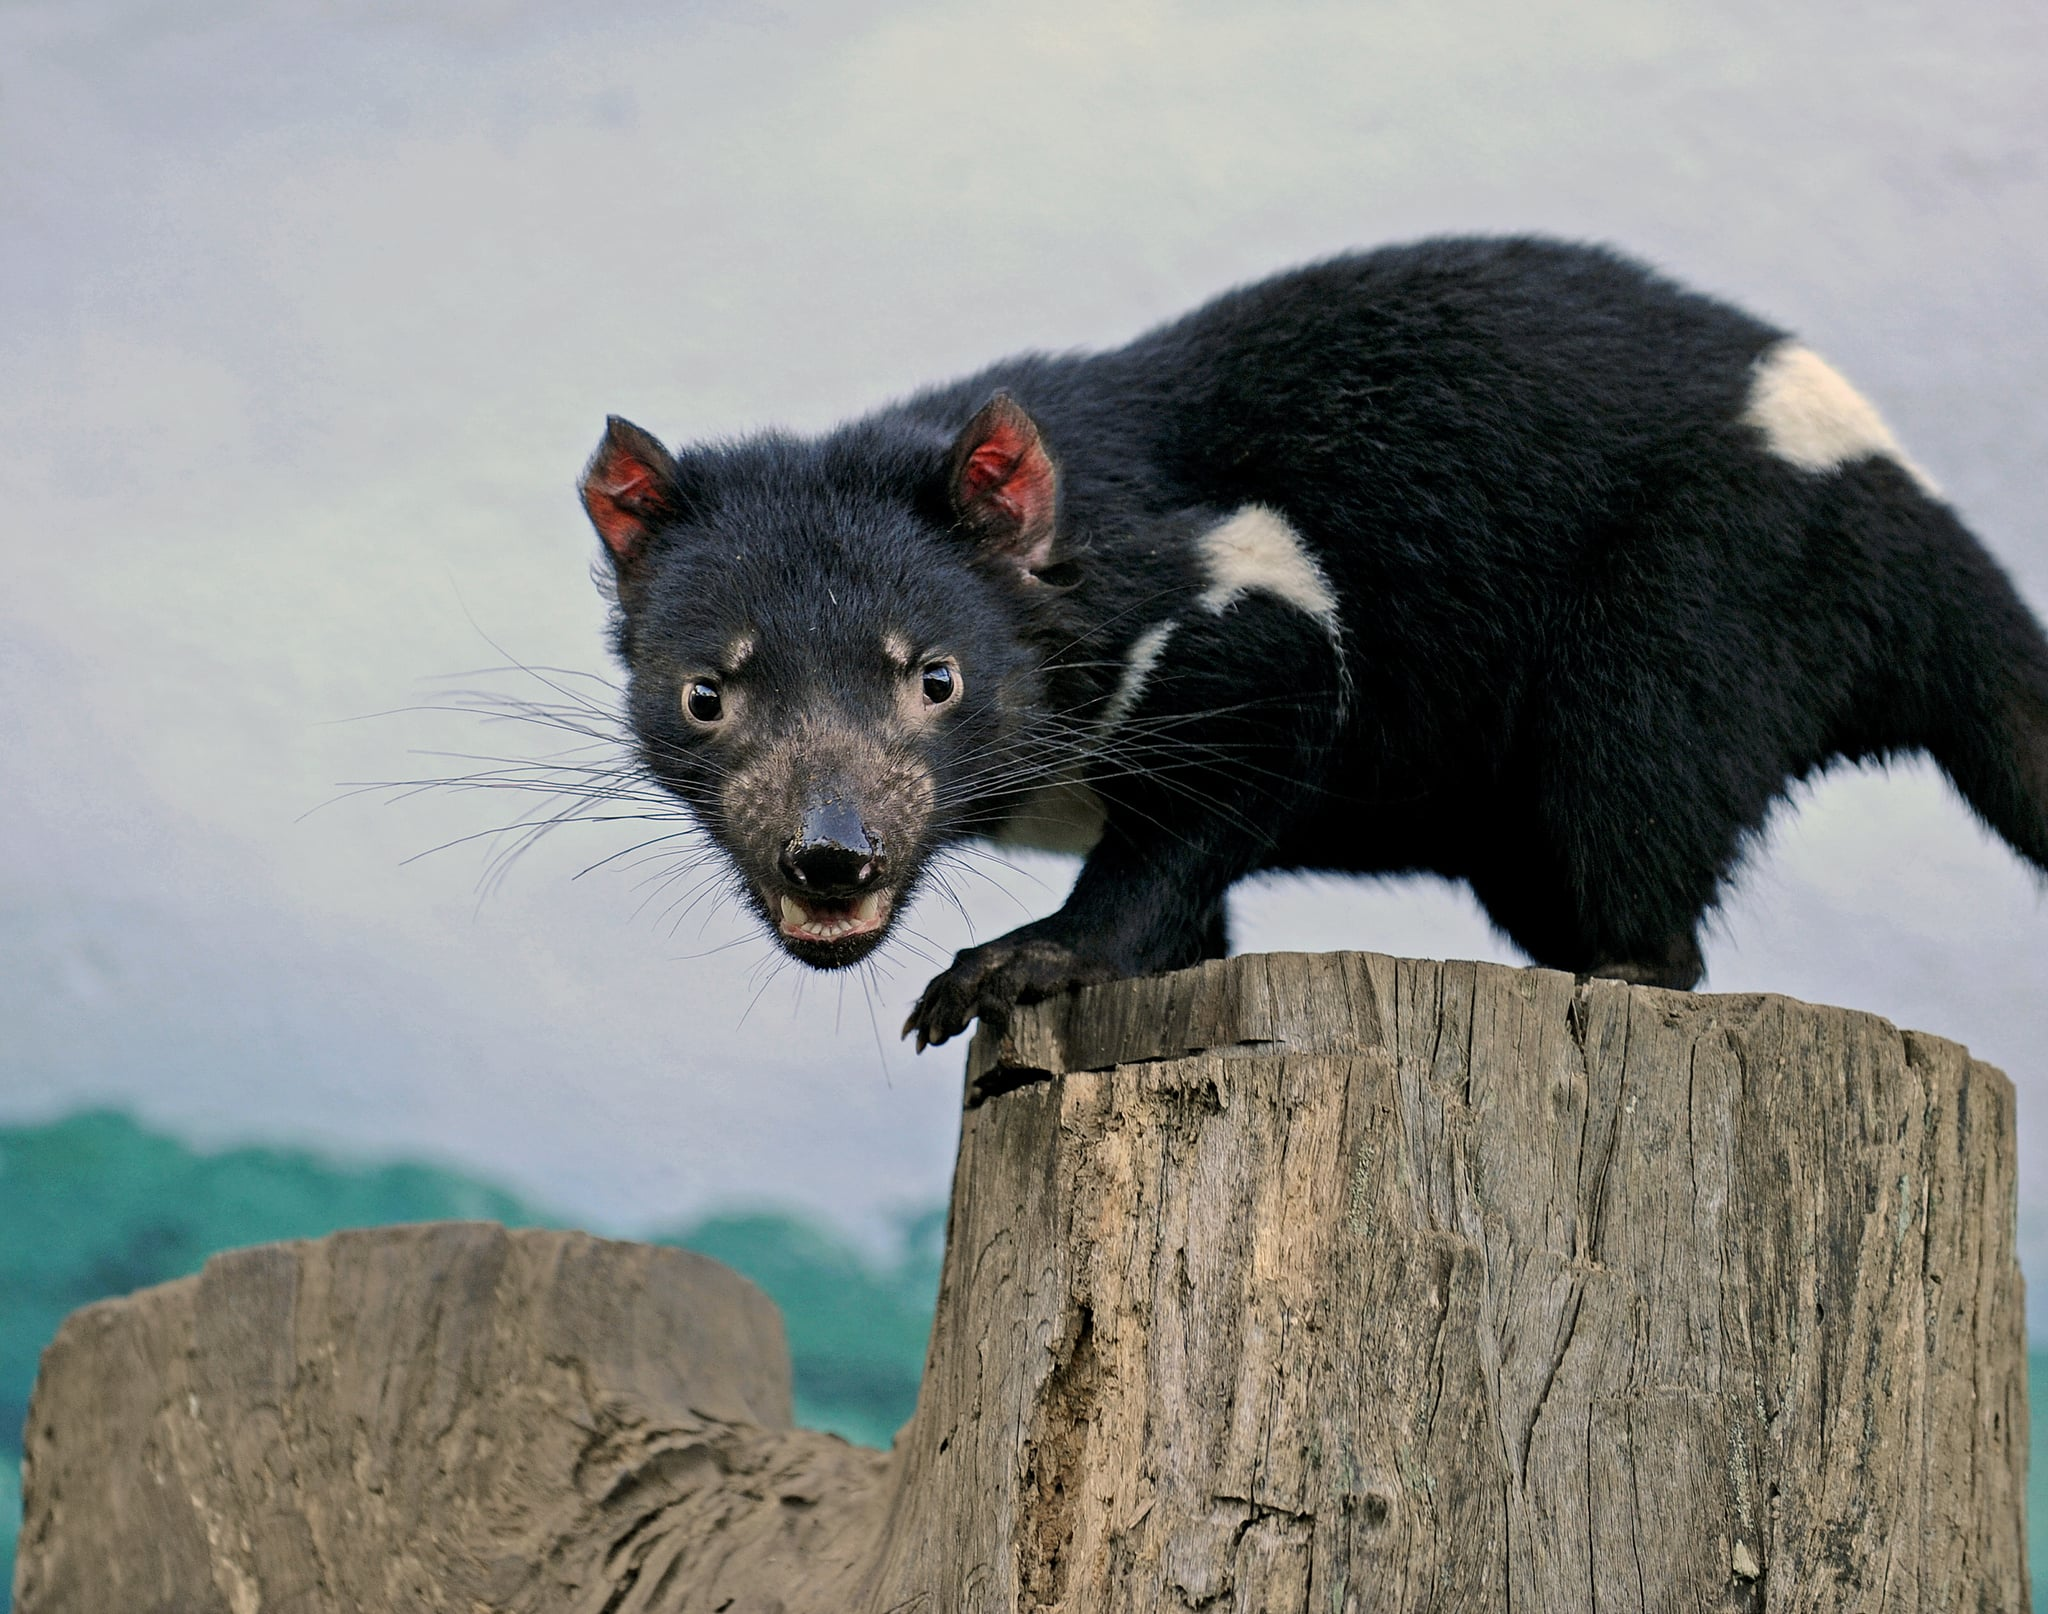 The Tasmanian devil comes by its name honestly, as these animals are notoriously ill-tempered and fly into a snarling, growling rage when threatened by predators.